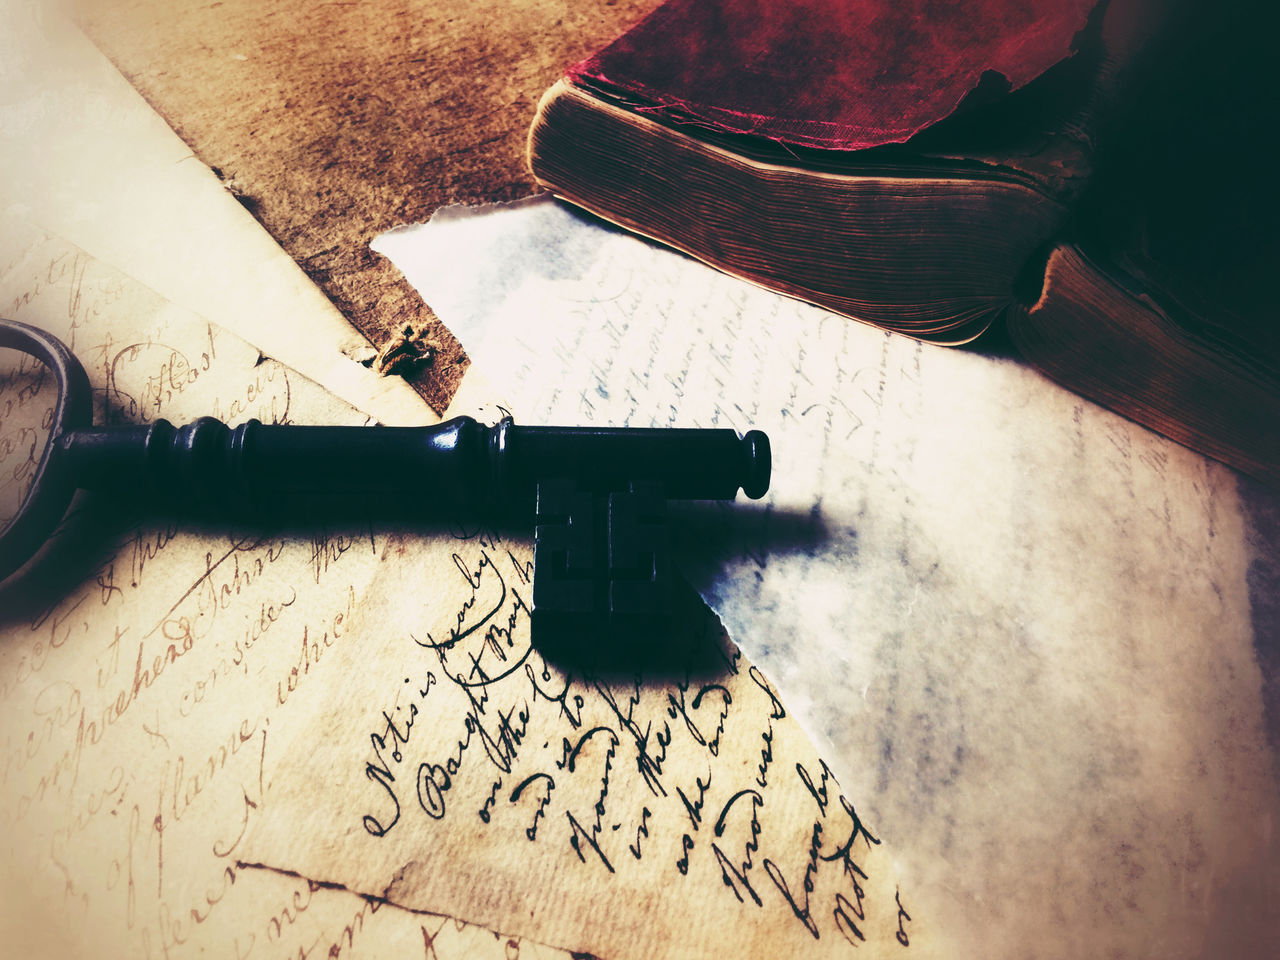 Vintage book with key and handwritten documents Atmospheric Mood Close-up Communication Copy Space Filtered Image Indoors  Key Leather Letters Nostalgic  Old Old Documents Old Handwriting Old-fashioned Pages Paper Phone Camera Romantic Still Life Text Textures Vintage Book Words